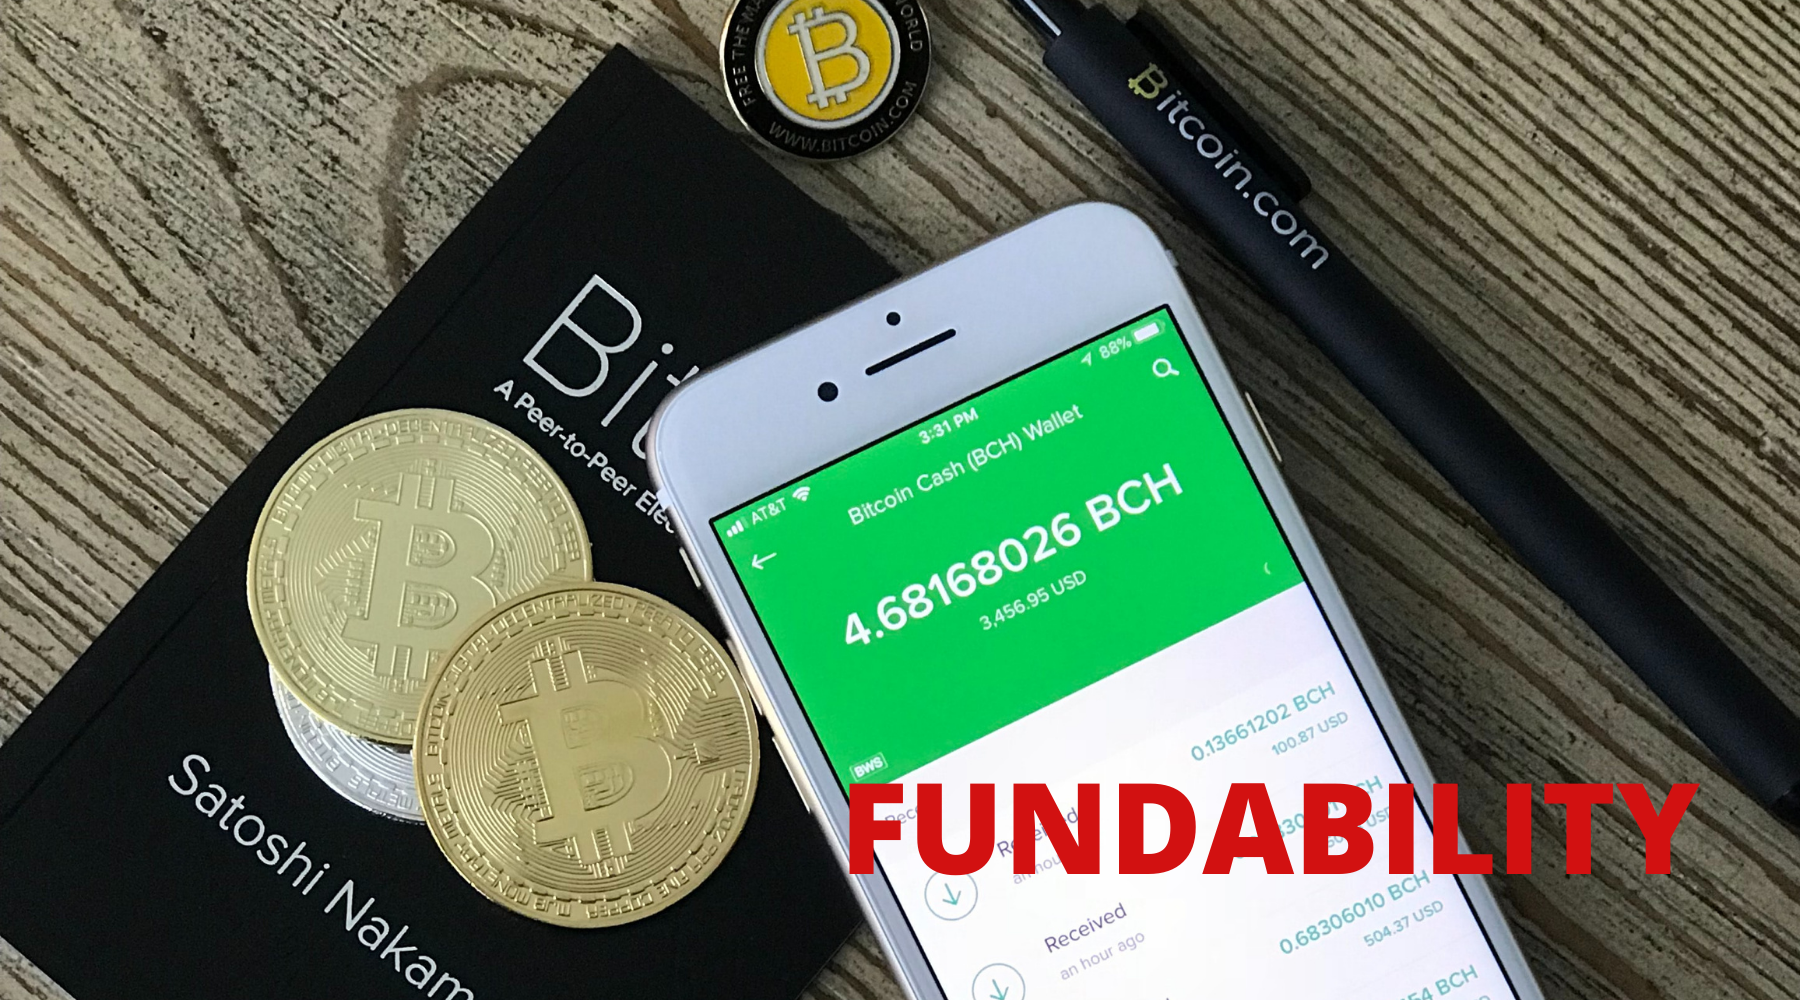 Fundability – What is It and How Can You Ensure It For Your Startup